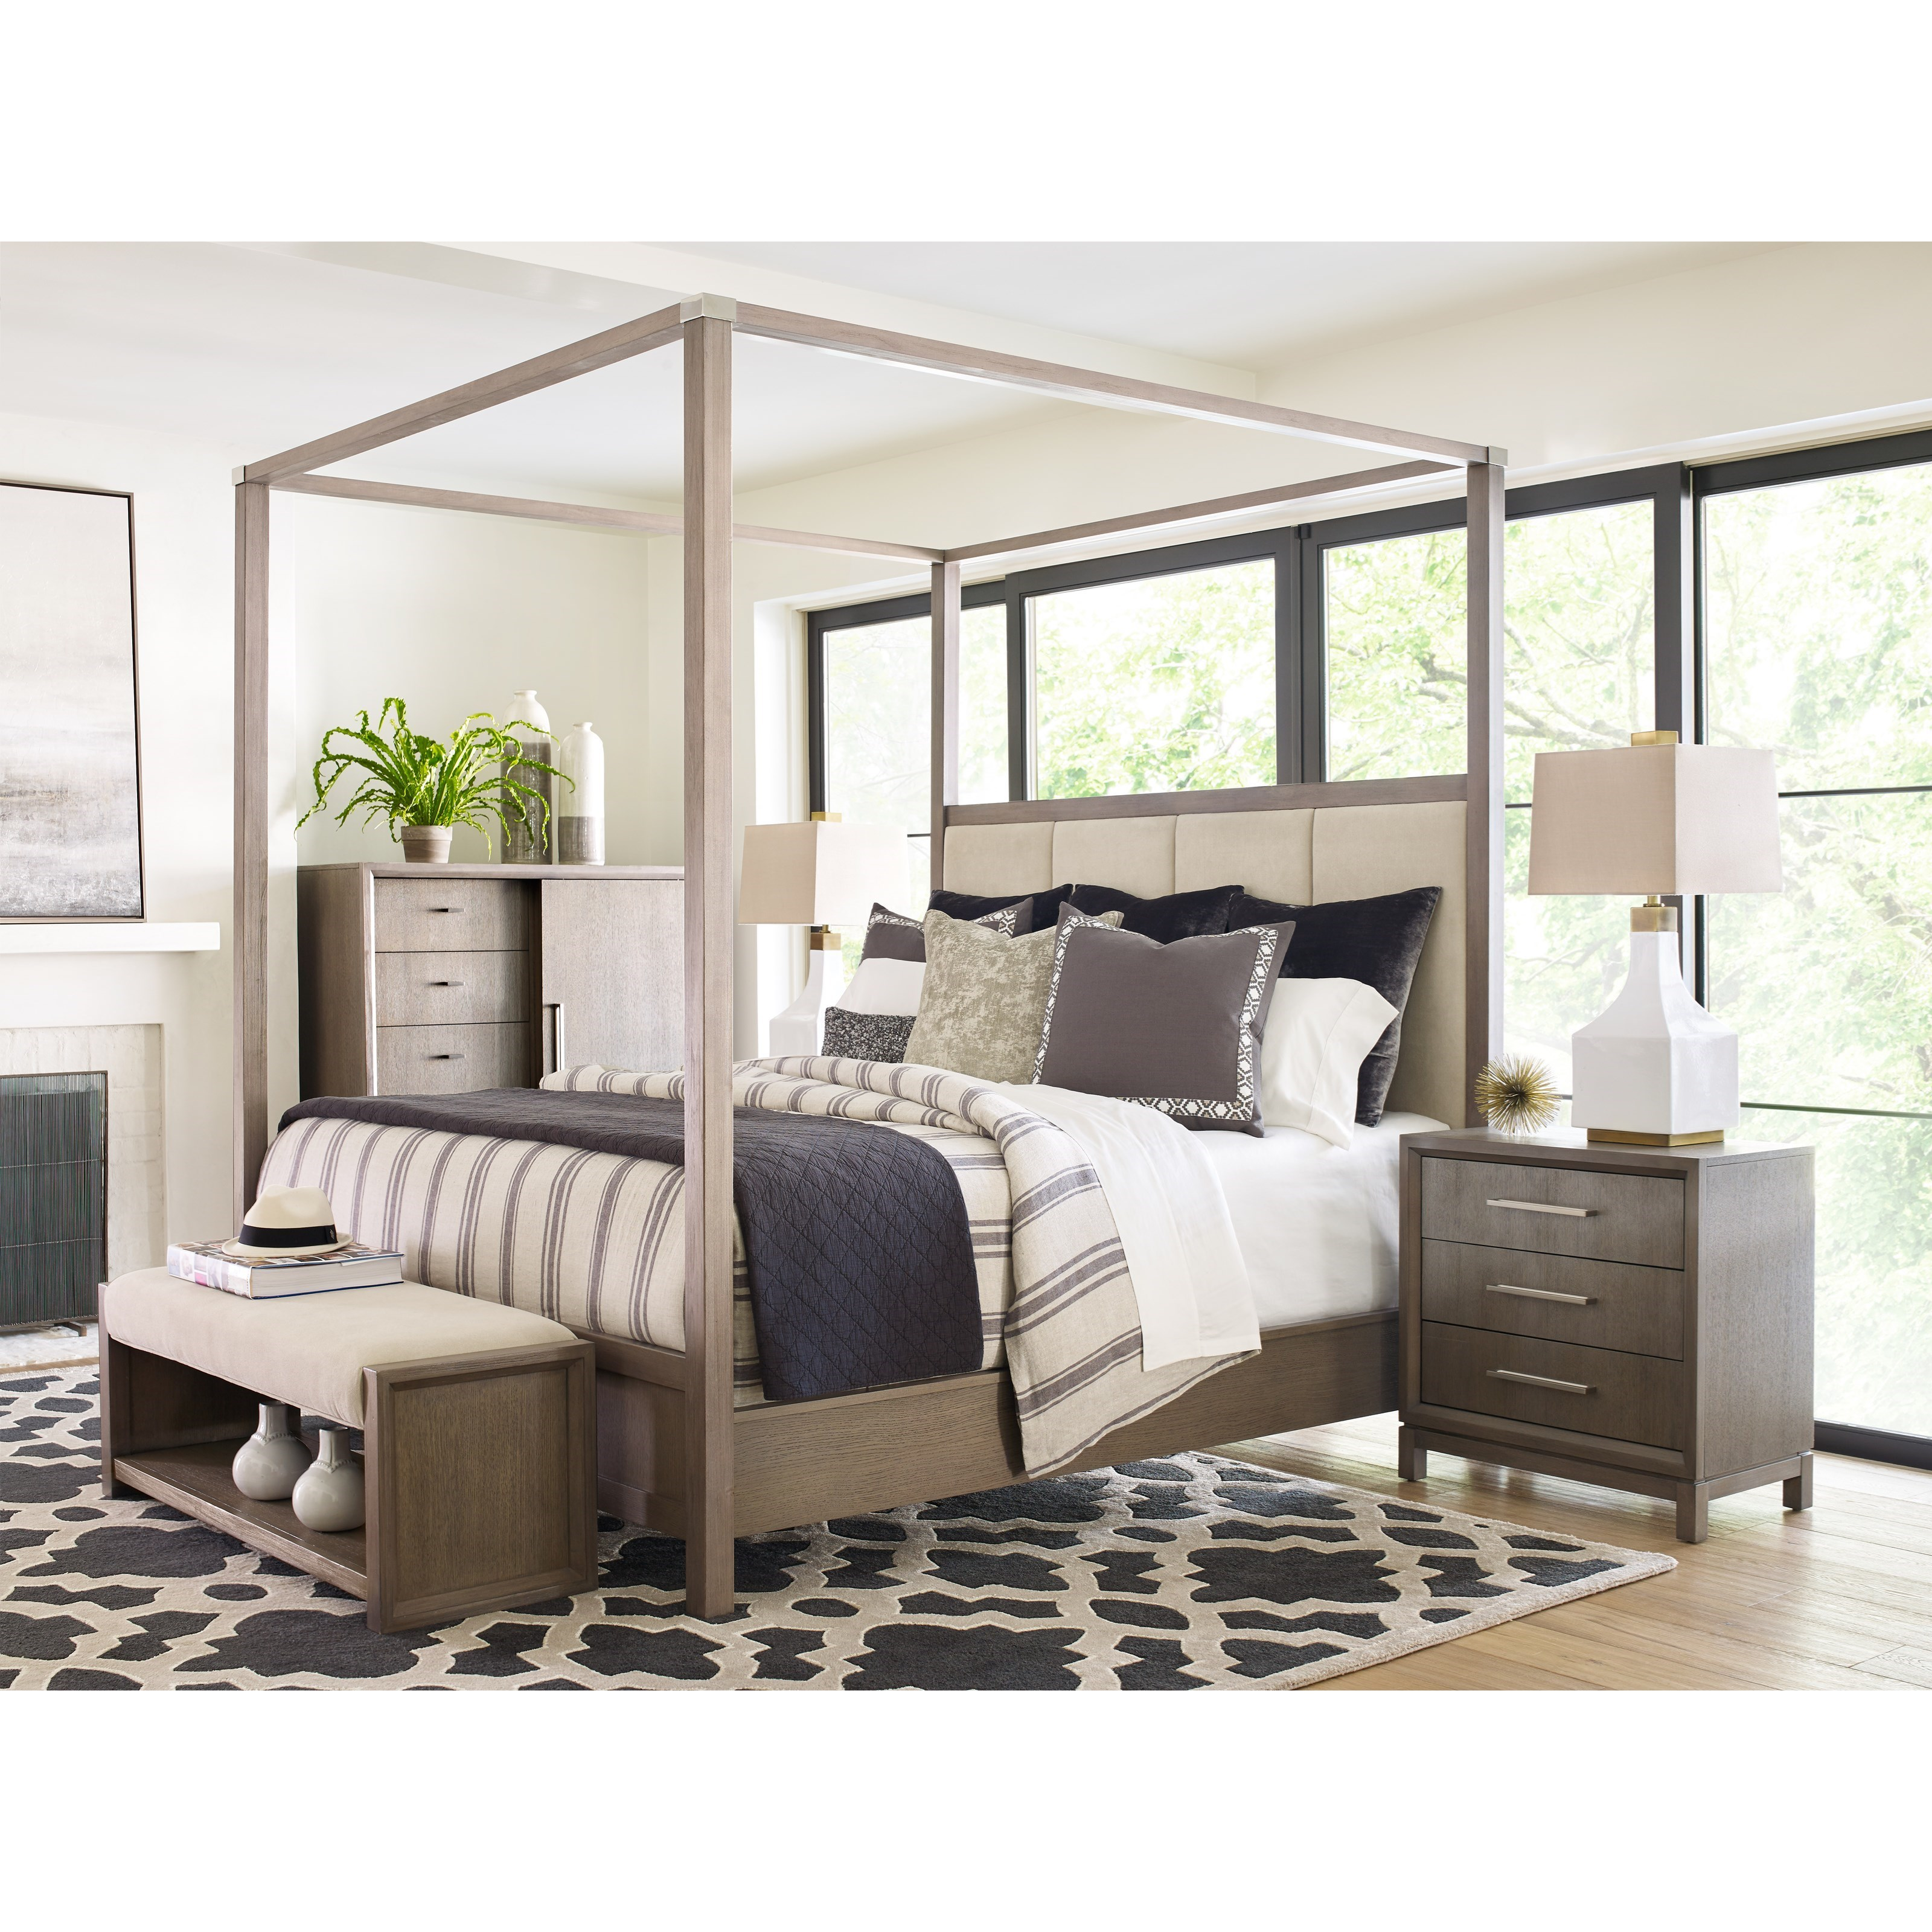 Rachael Ray Home High Line King Upholstered Poster Bed Fashion Furniture Upholstered Beds